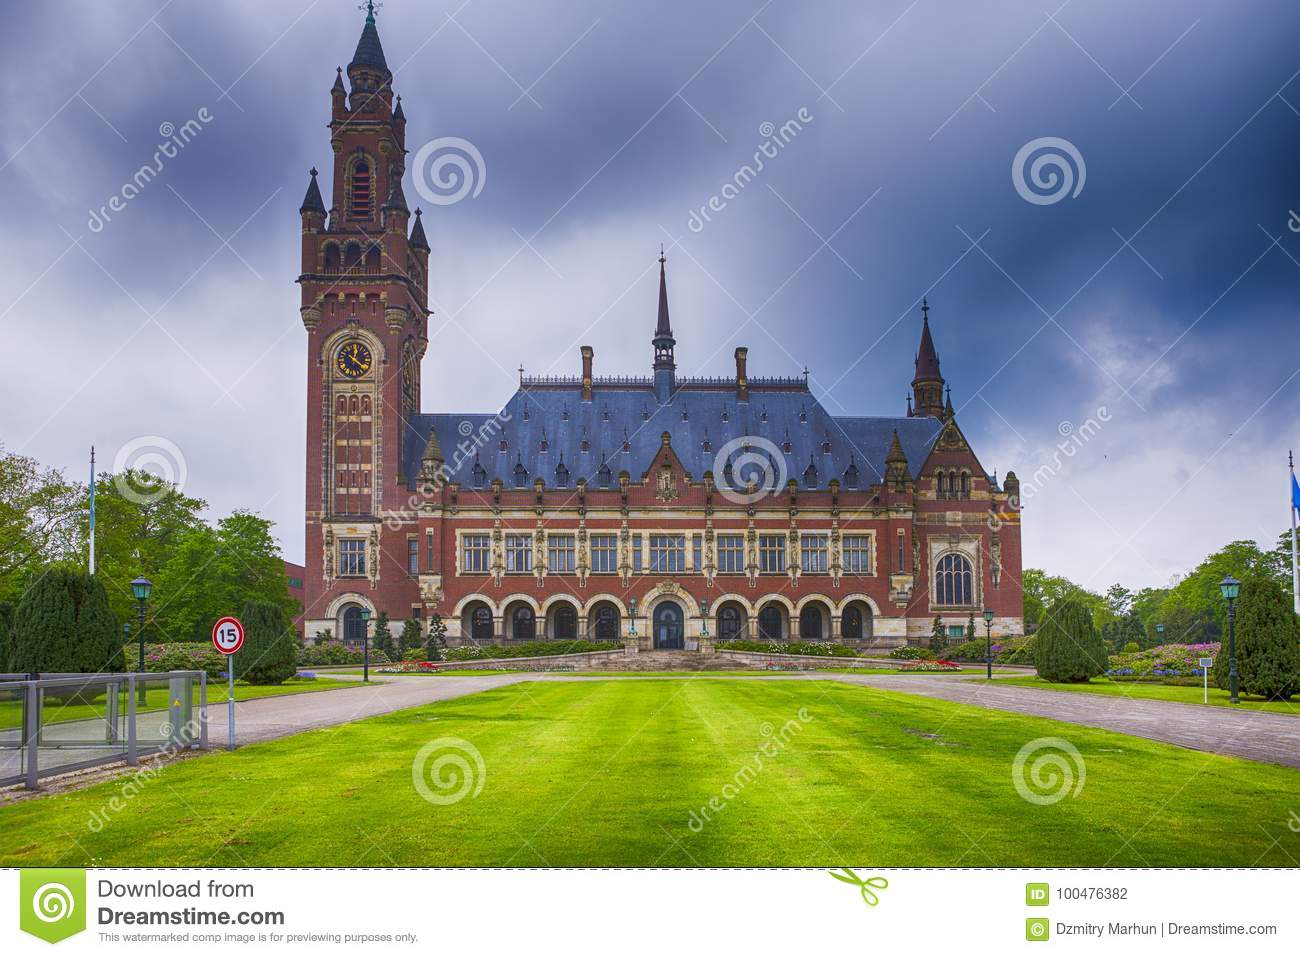 Travel Consepts. Peace Palace in Den Haag Hague